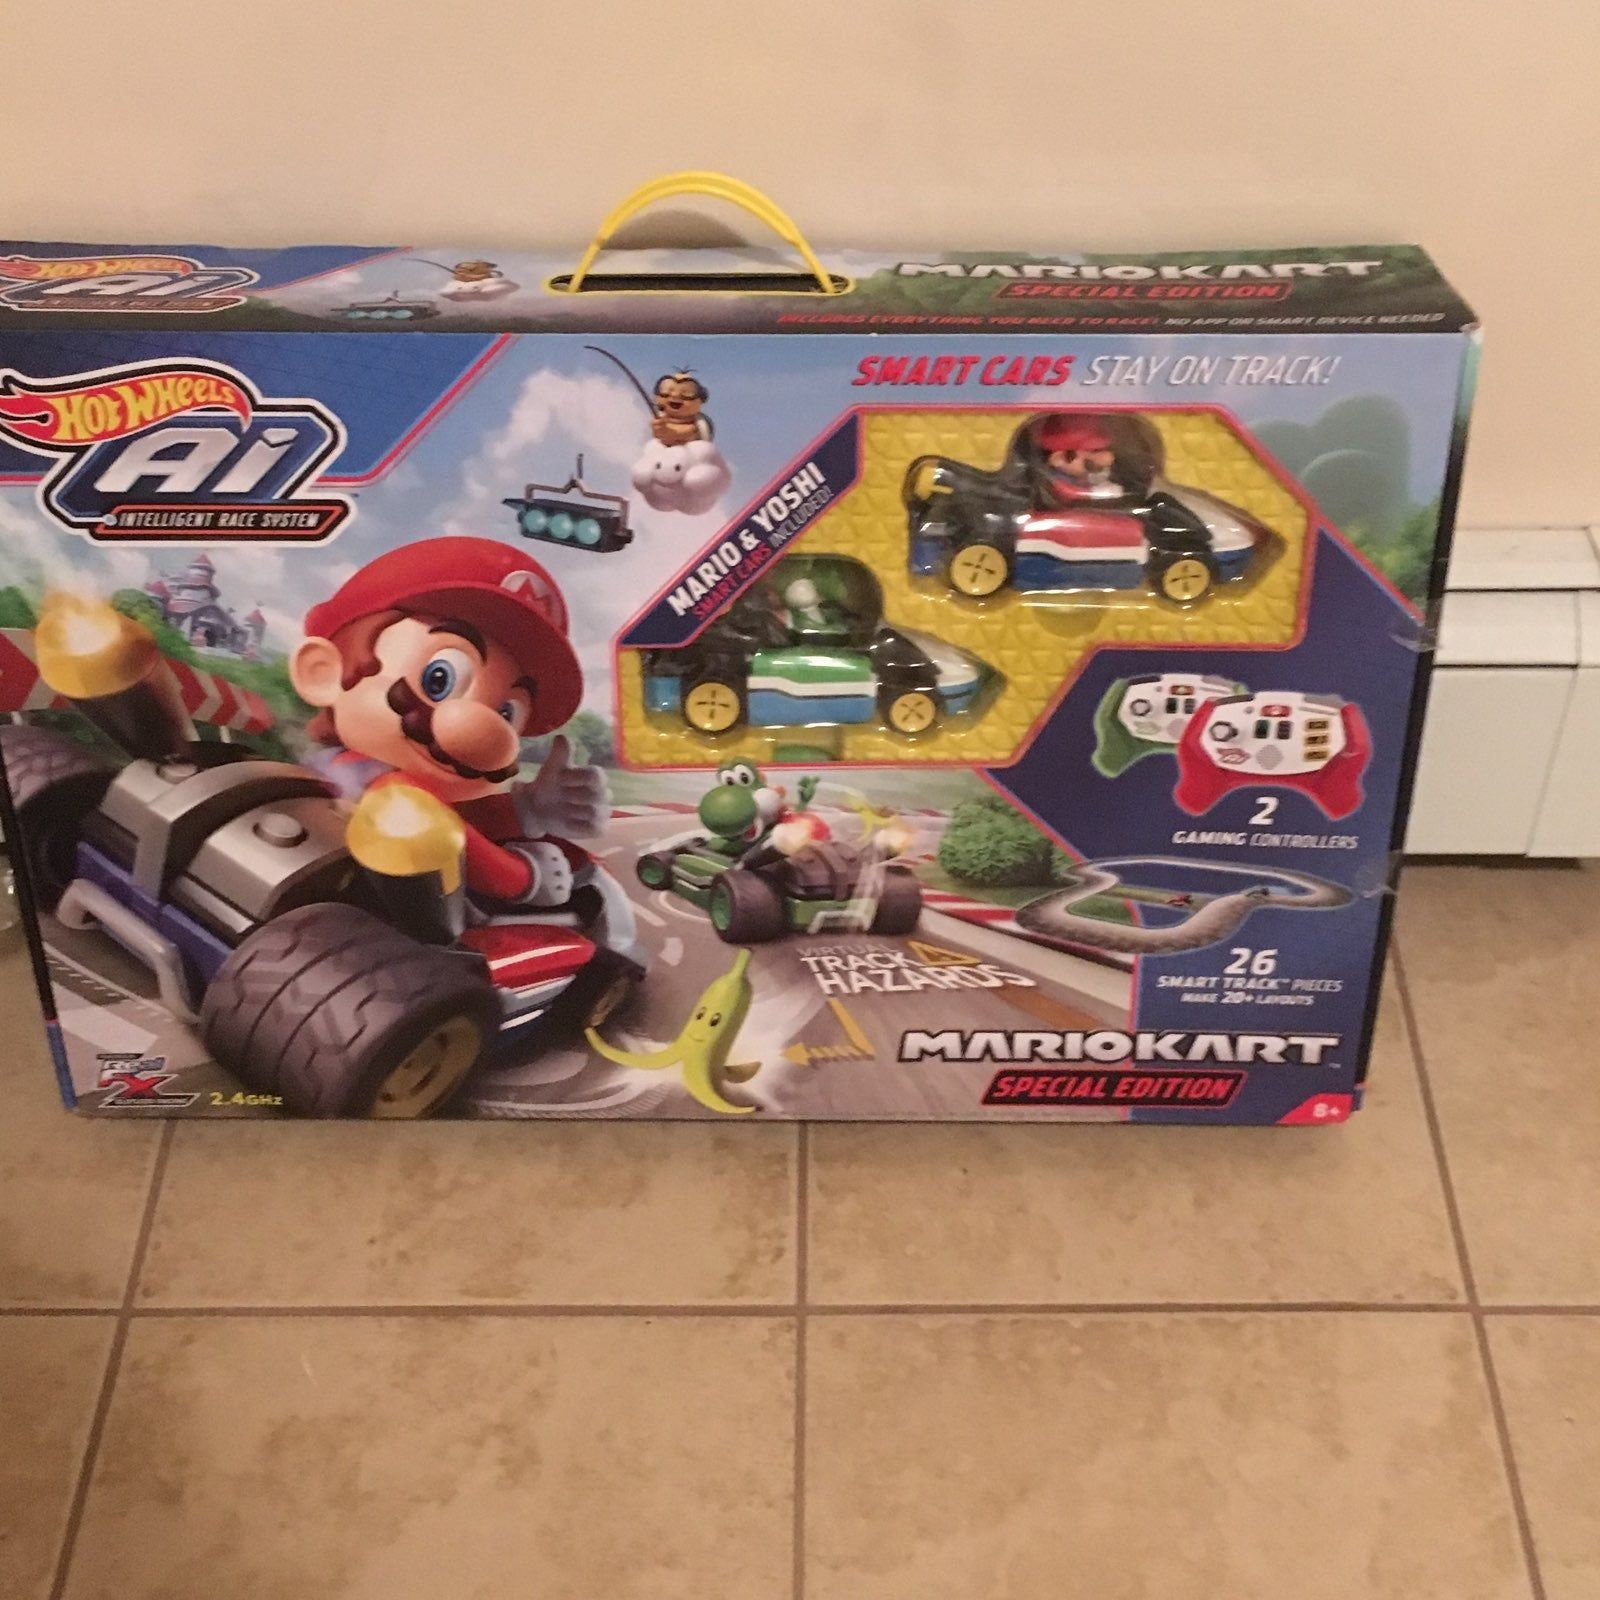 New In Box Hard To Find Hot Wheels Mario Kart Special Edition Race System Perfect Christmas Gift For Your M Hot Wheels Hot Wheels Cars Christmas Gift For You